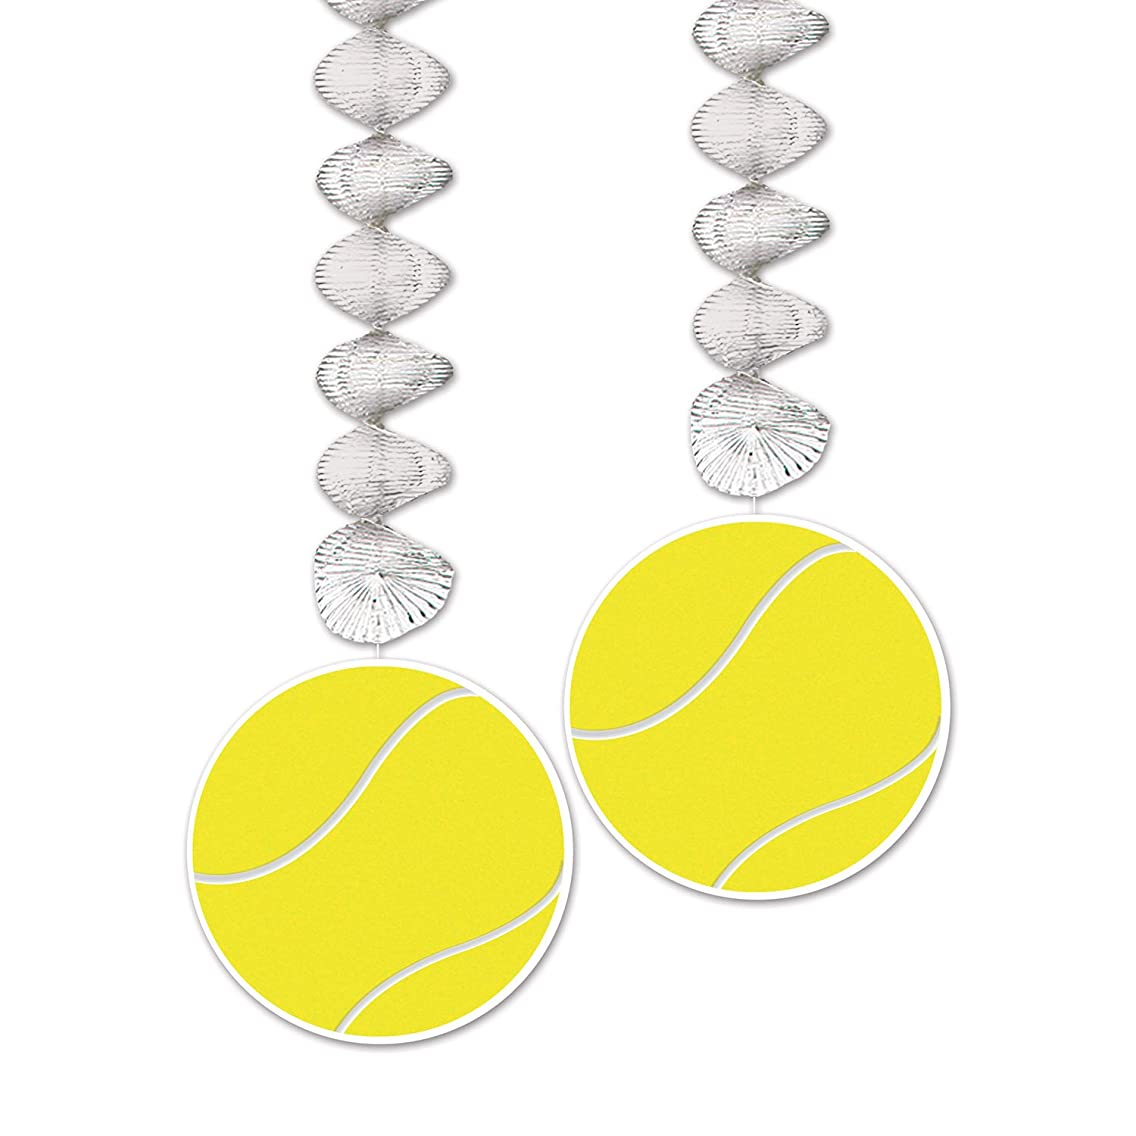 Beistle 54737 Tennis Ball Danglers (2 Pack), 30